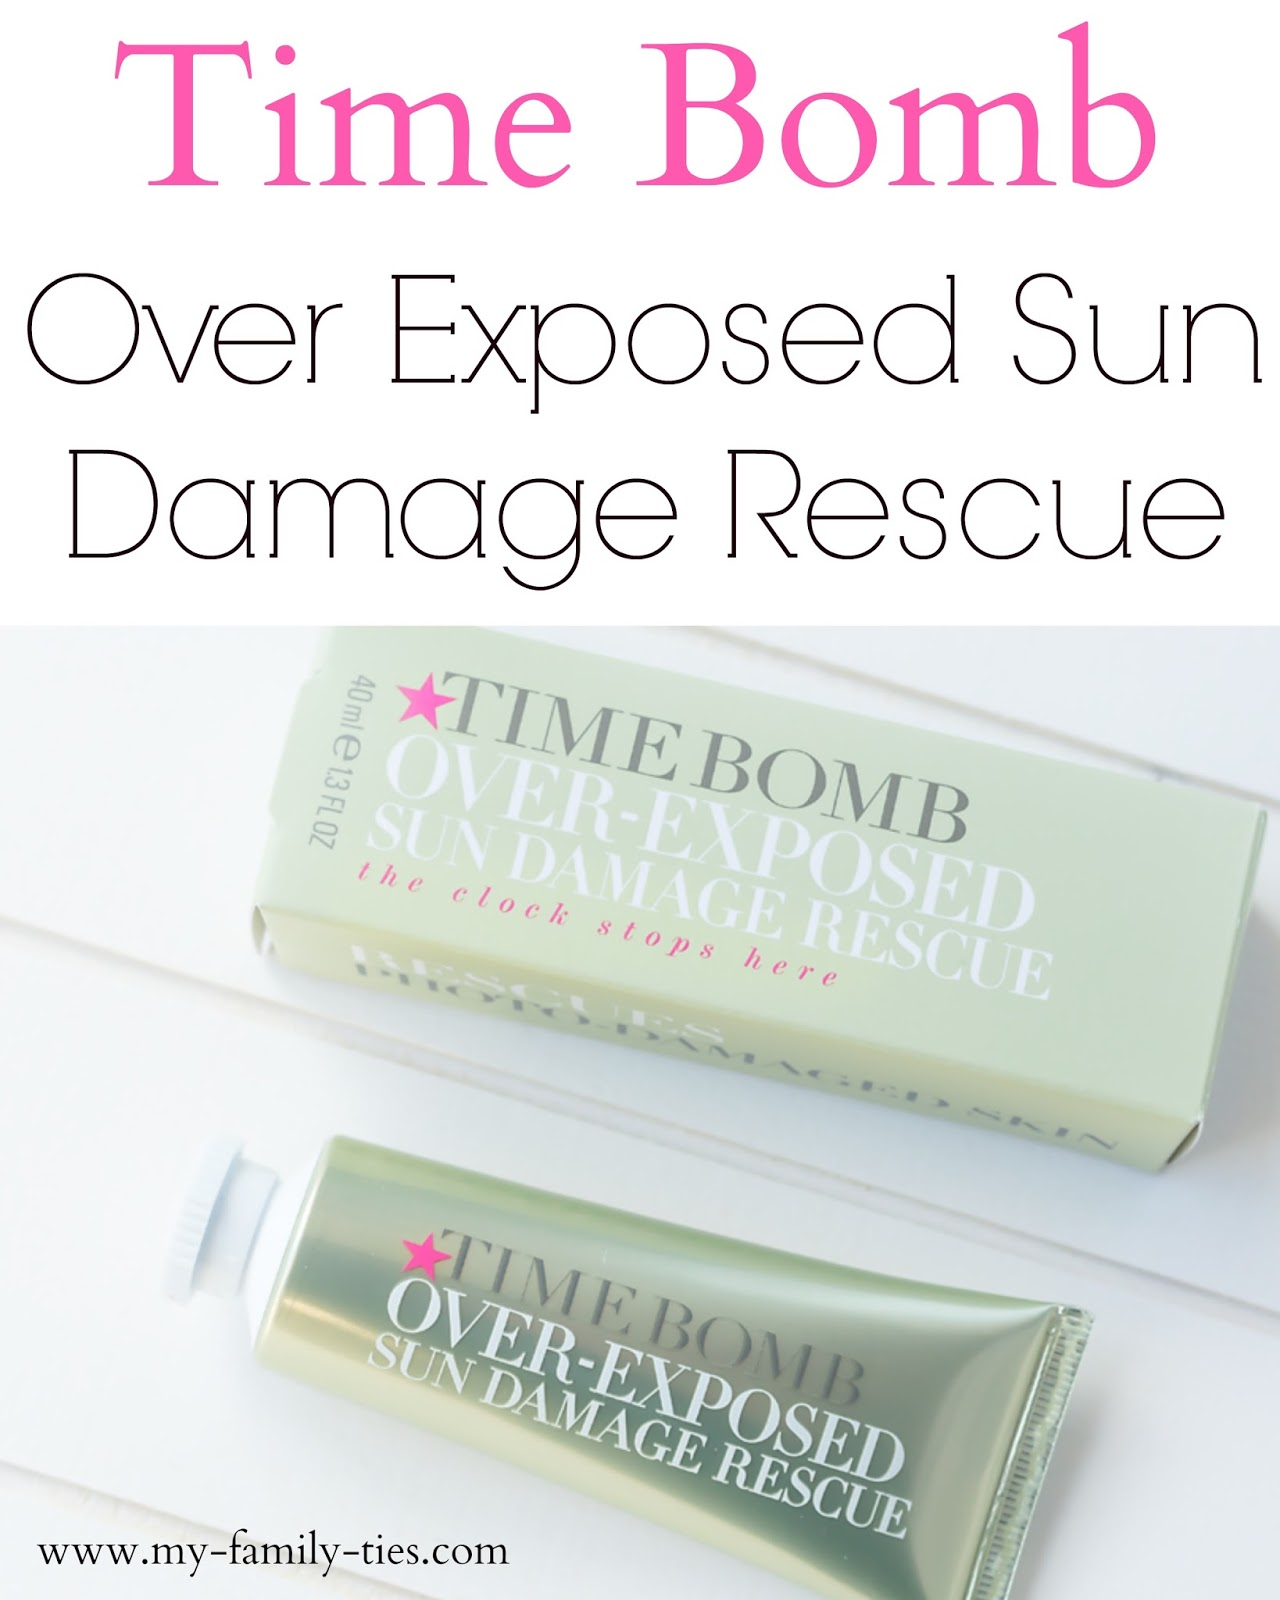 Time Bomb Over Exposed Sun Damage Rescue Review  photos by My Family Ties Blog www.my-family-ties.com